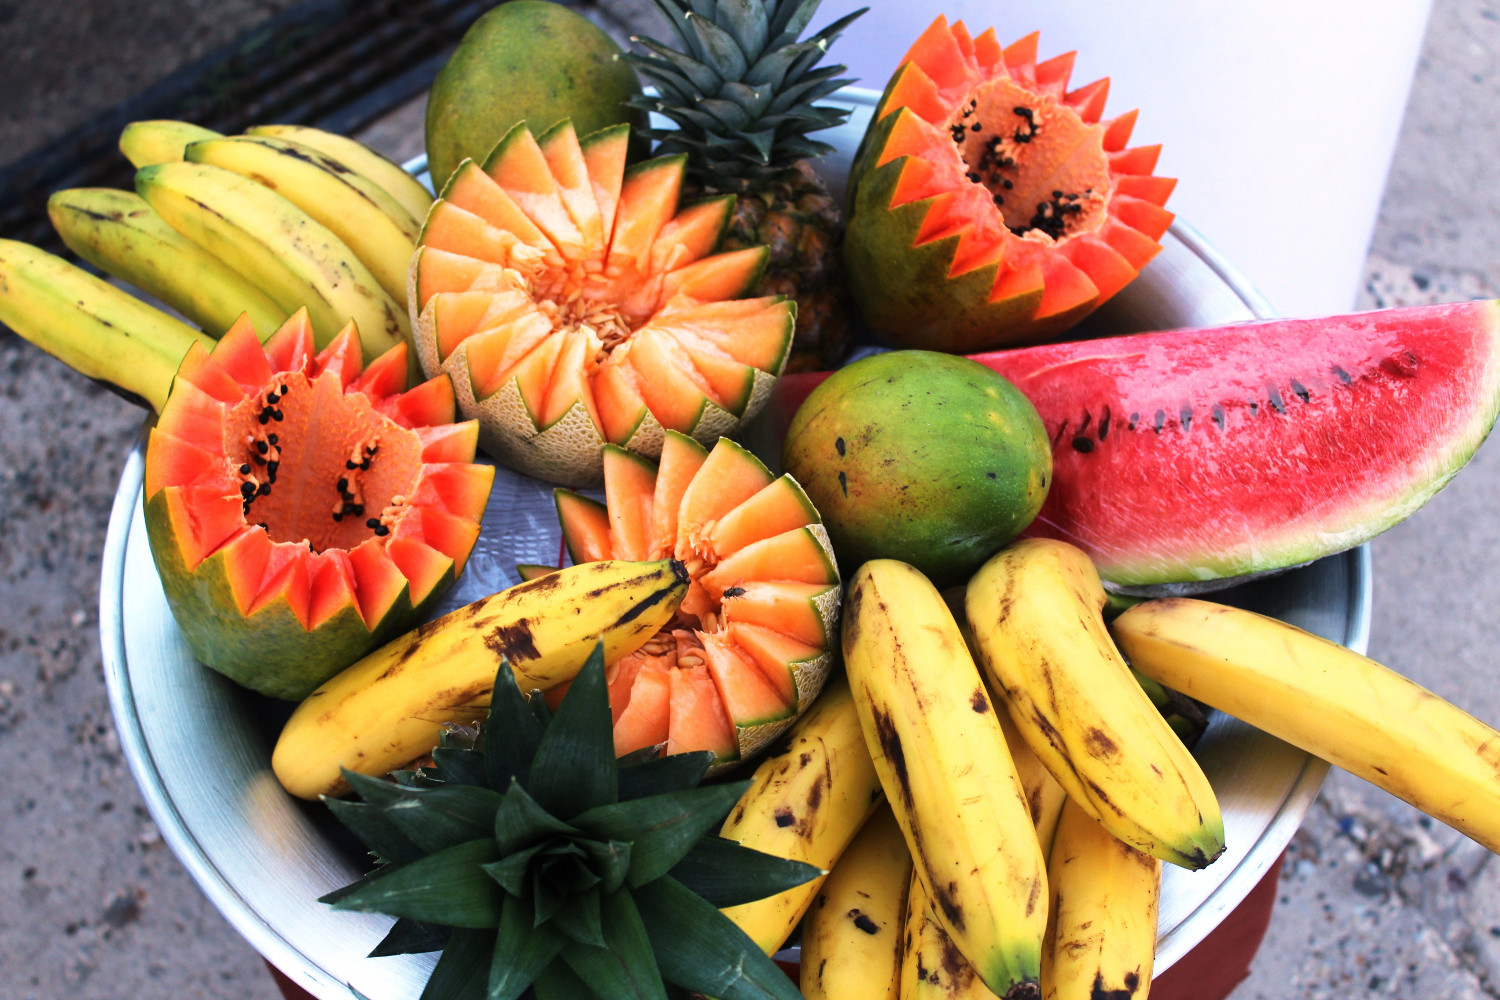 Schluss mit Fleisch: Bei der Hitze an der Karibikküste ist Obst angesagt | No more meat eating: fruit is the order of the day in the heat of the Caribbean coast